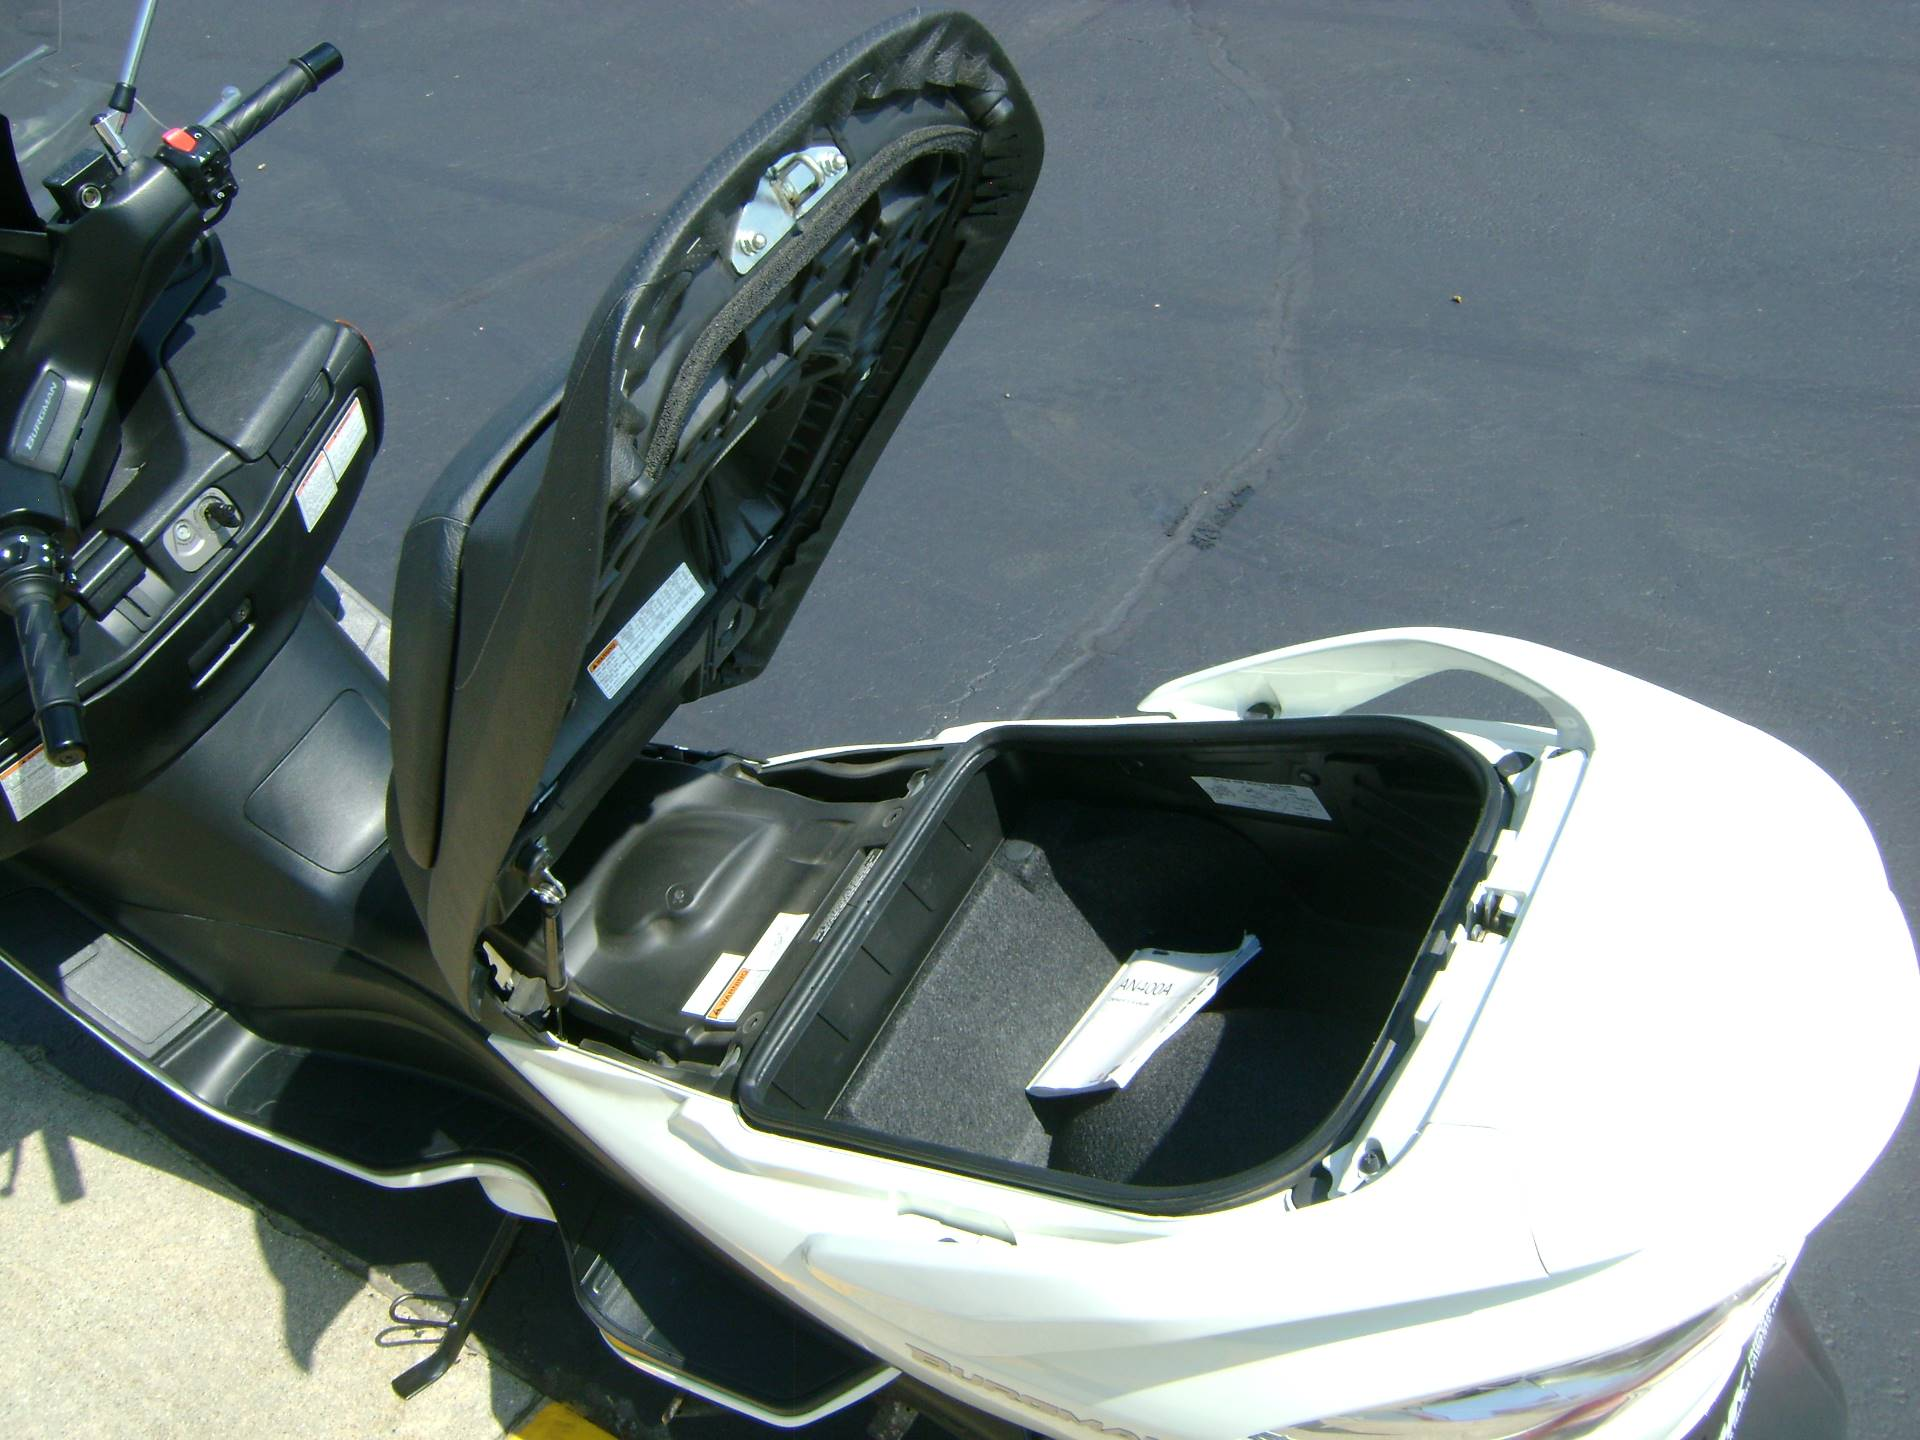 2012 Suzuki BURGMAN 400 ABS in Freeport, Illinois - Photo 13